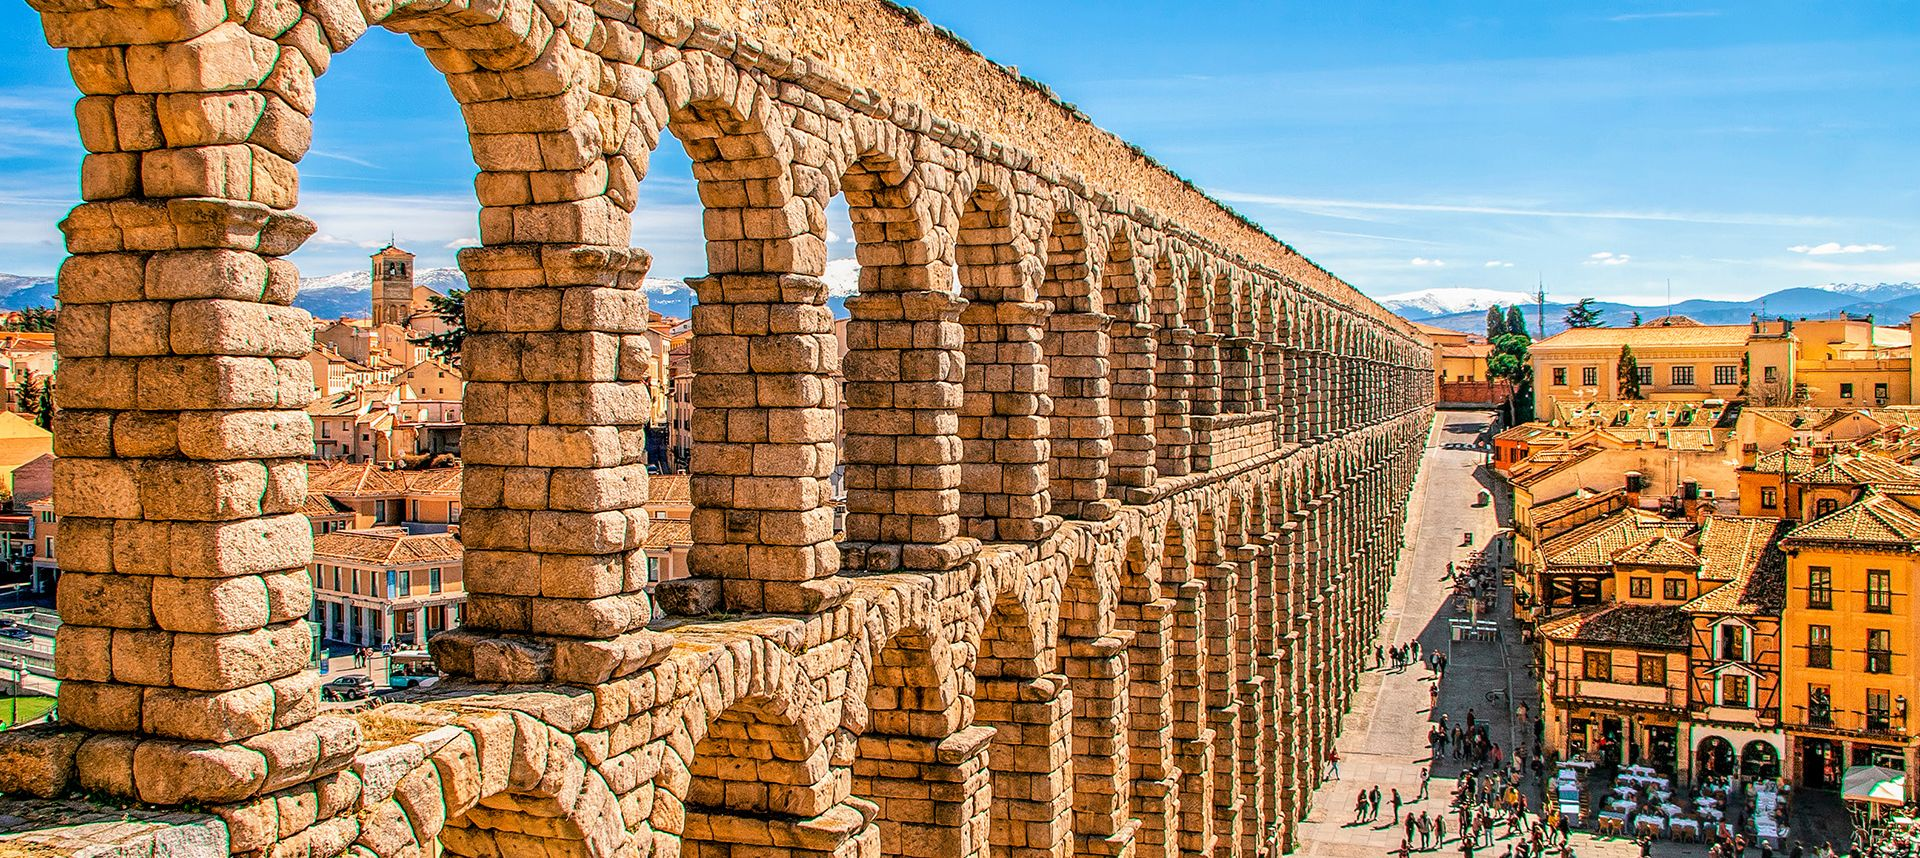 Quiz: How well do you the world's most amazing aqueducts?